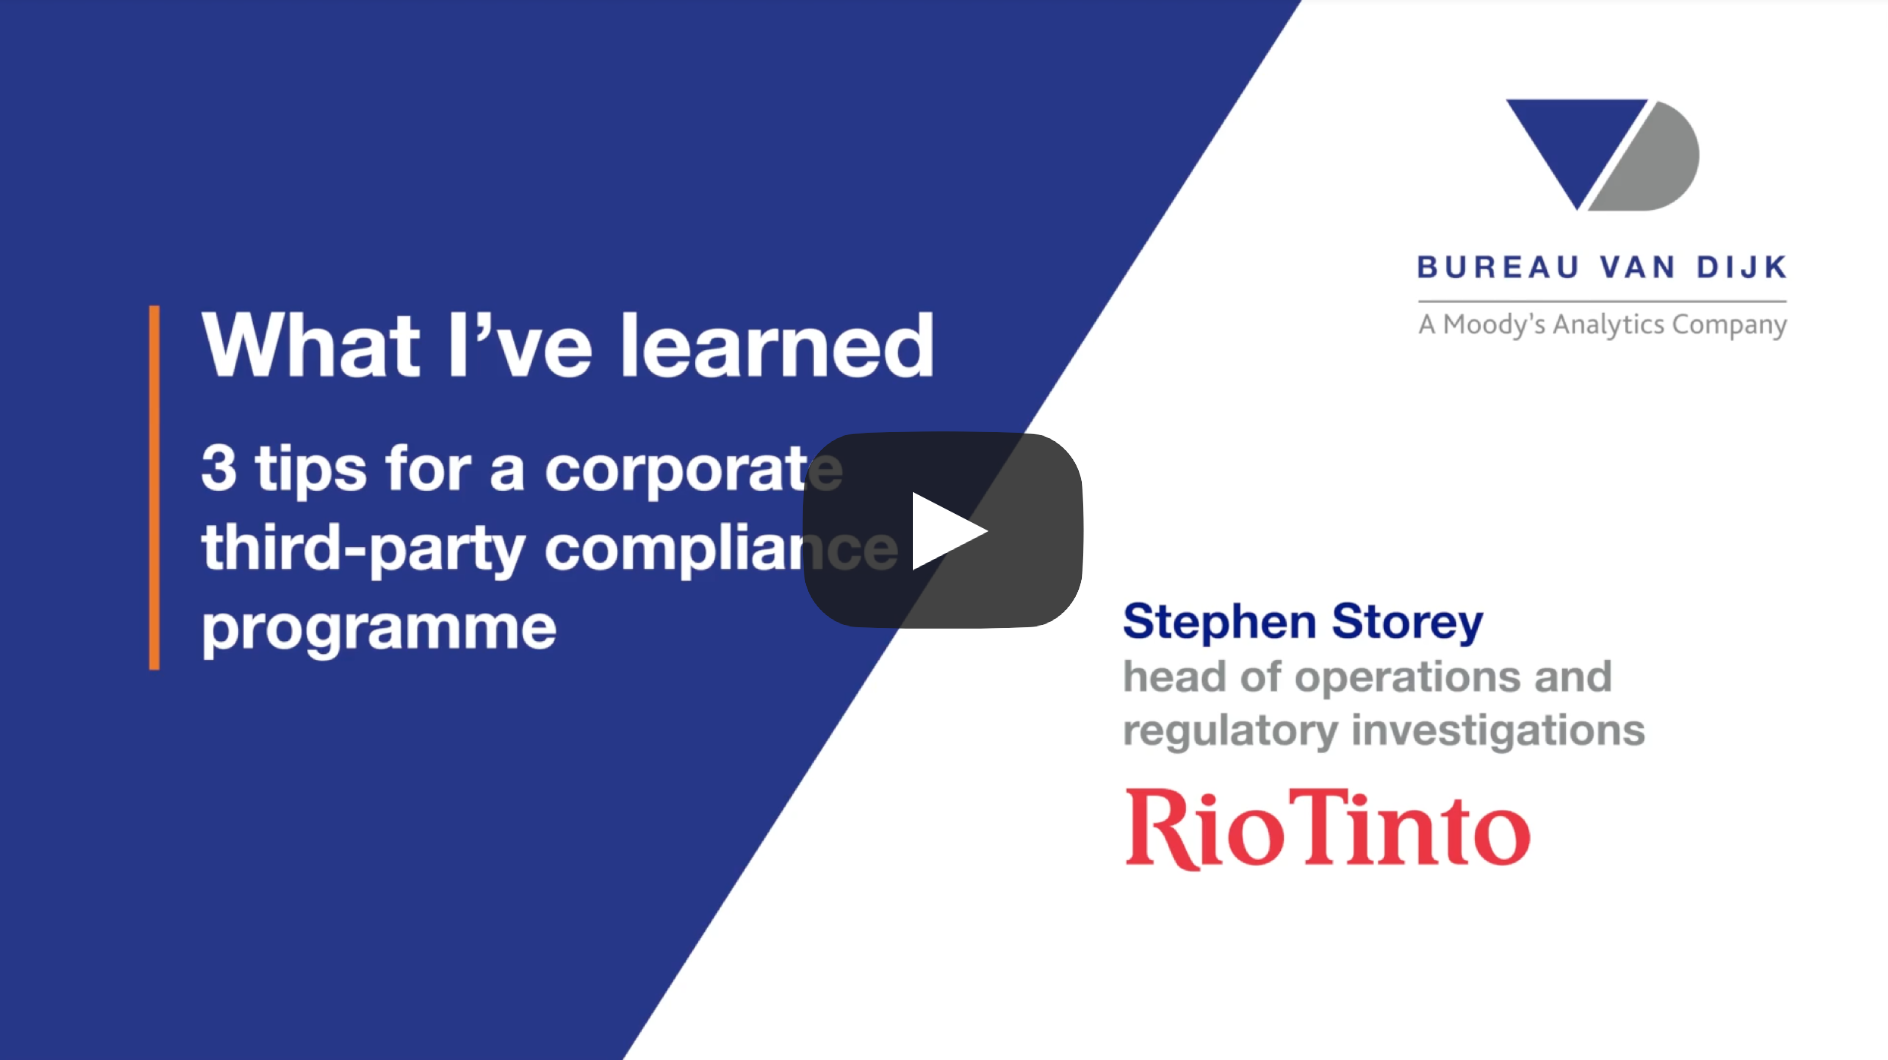 3 tips for a corporate third-party compliance programme Stephen Storey Rio Tinto